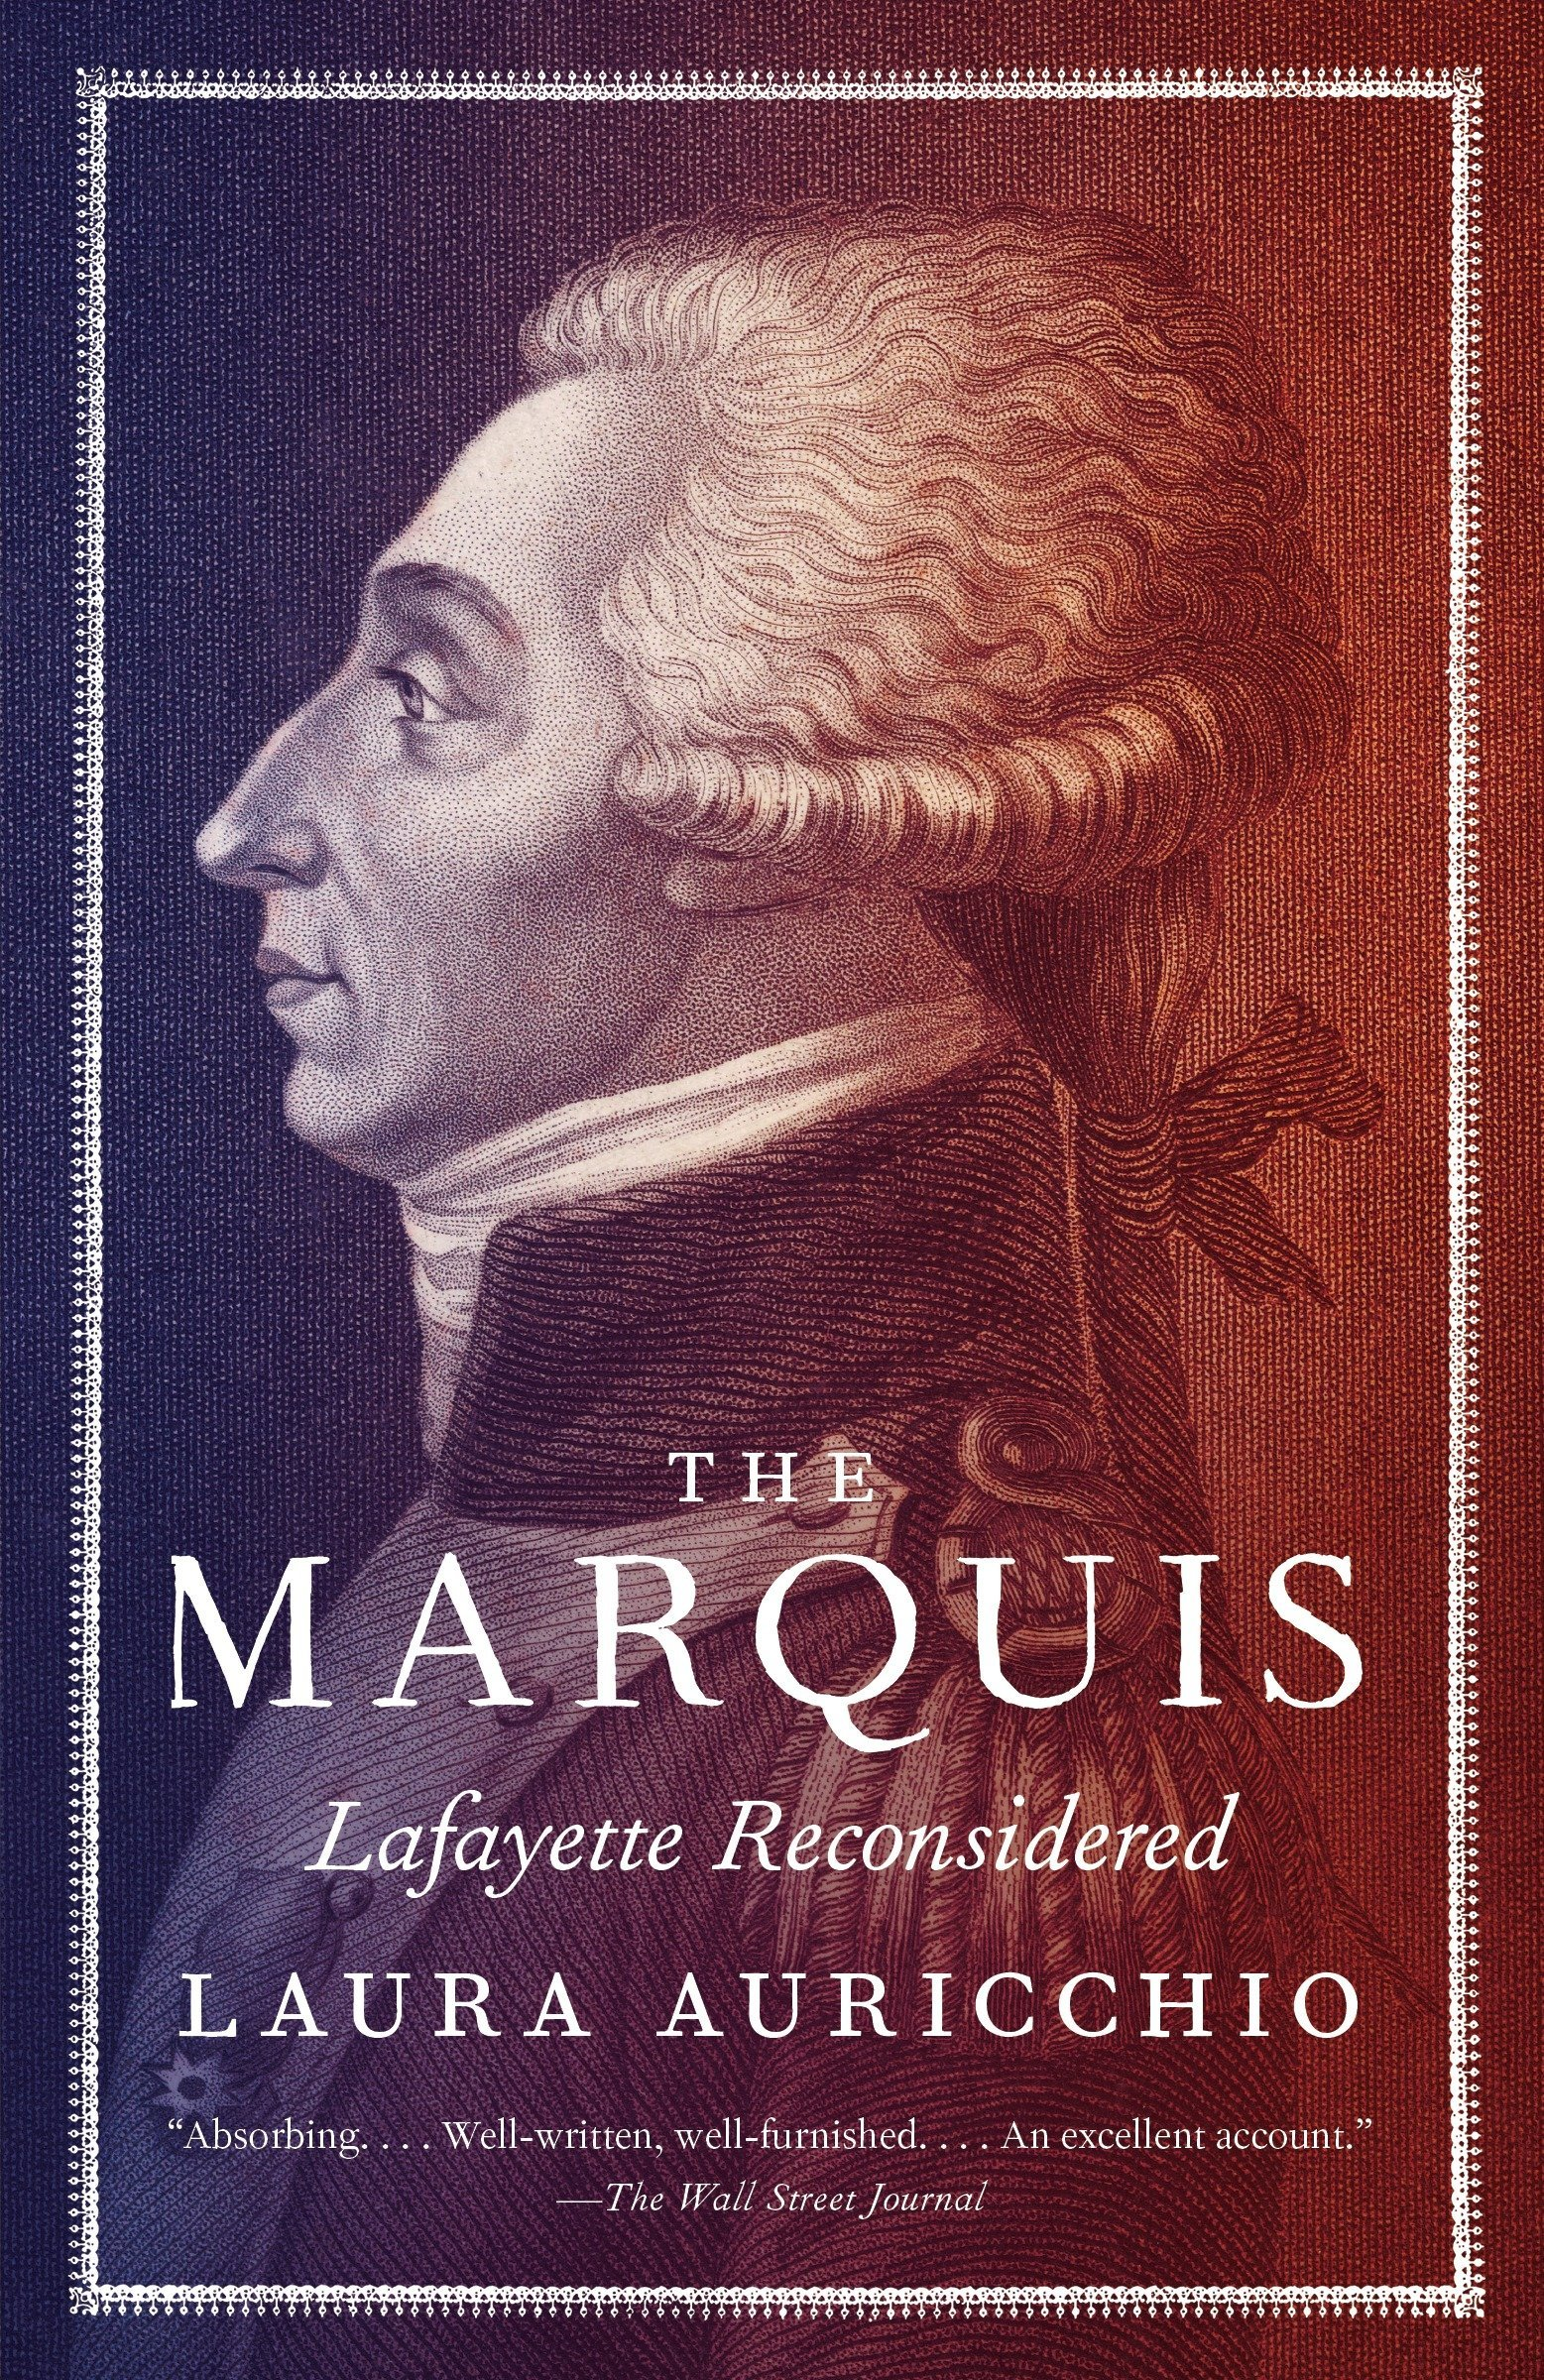 Amazon.com: The Marquis: Lafayette Reconsidered (9780307387455 ...